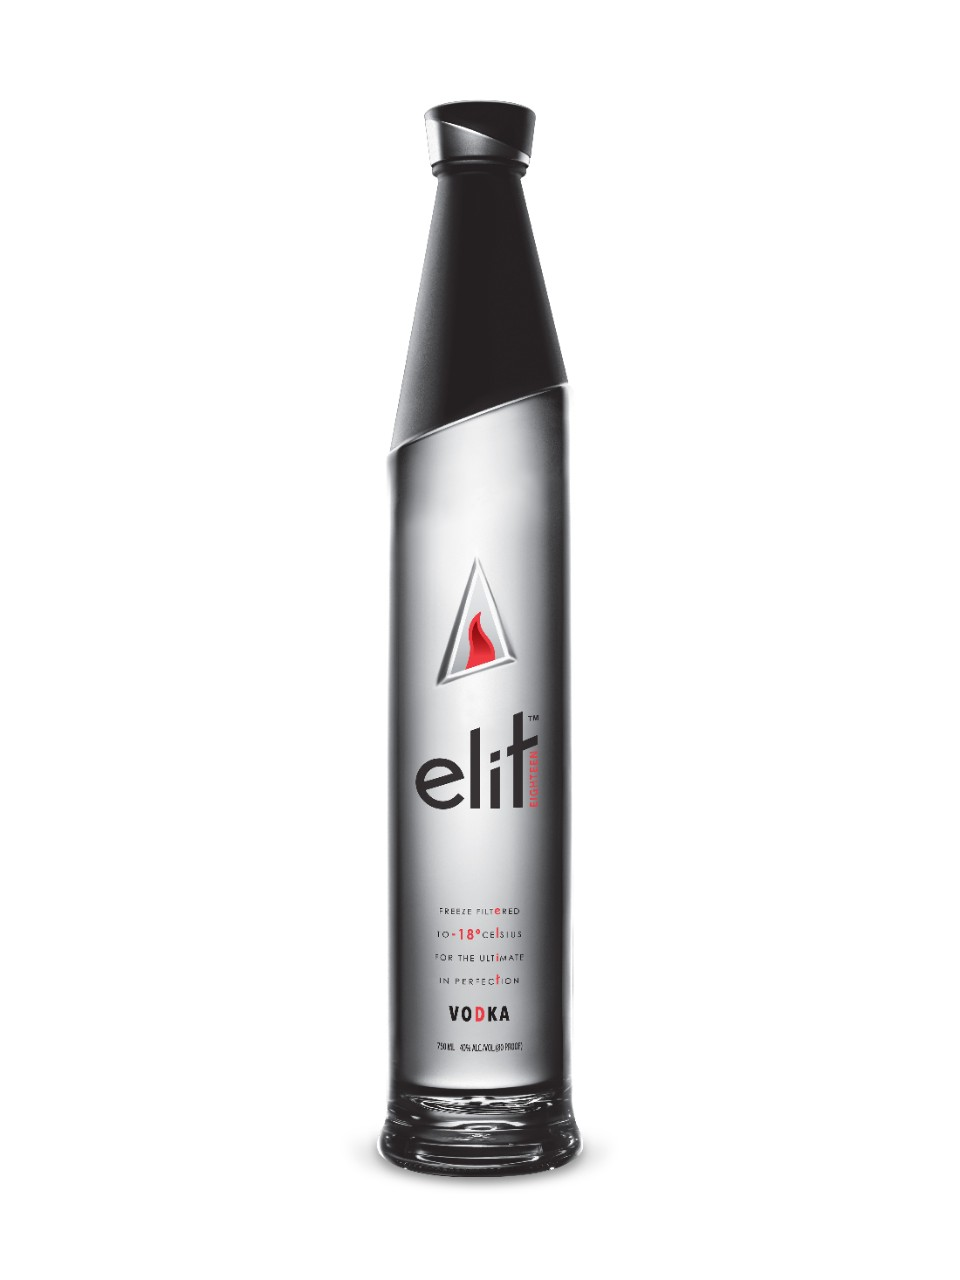 Nothing like Elit Vodka for elitist personalities!